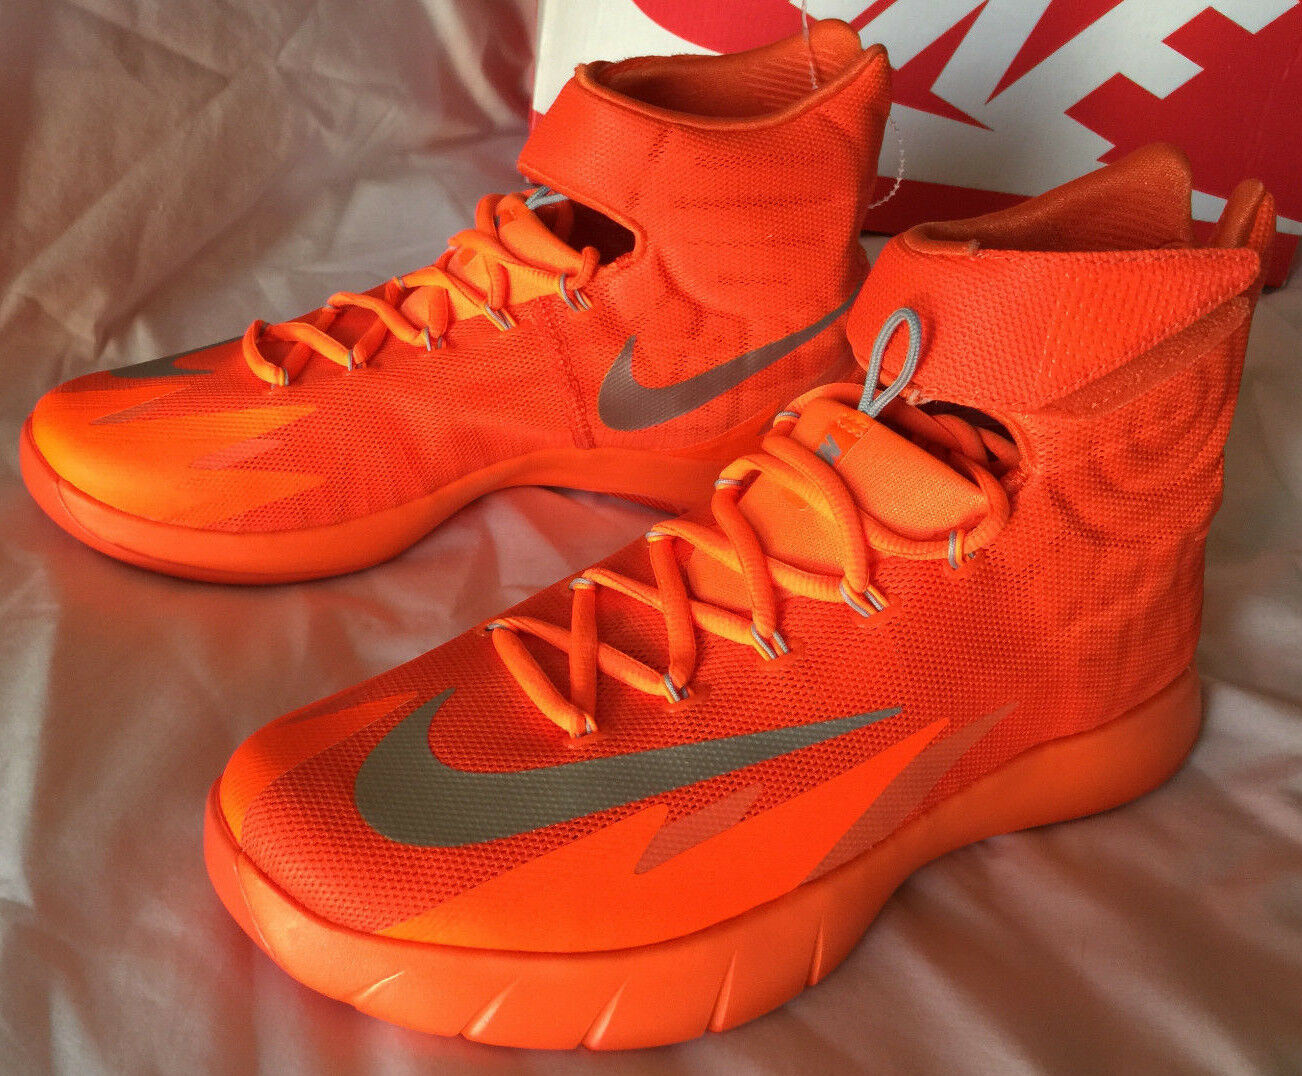 Nike Zoom Hyperrev Kyrie Erving 643301-803 Orange Basketball Shoes Men's 17 new